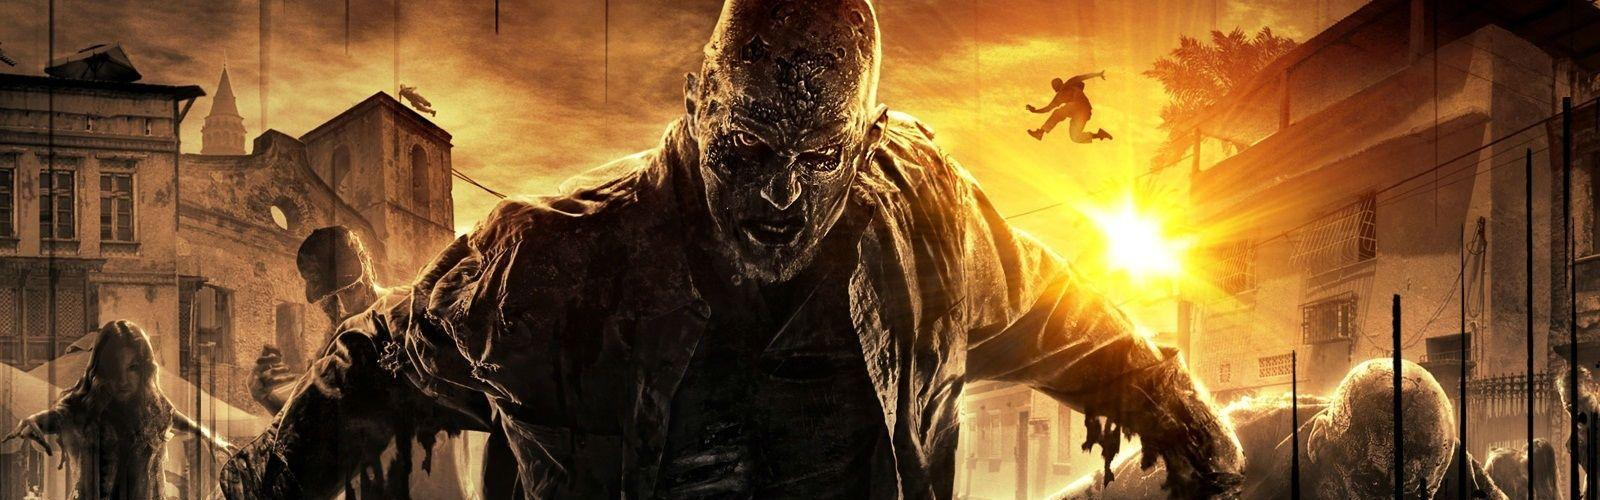 Dying Light (uncut) Steam Key GLOBAL